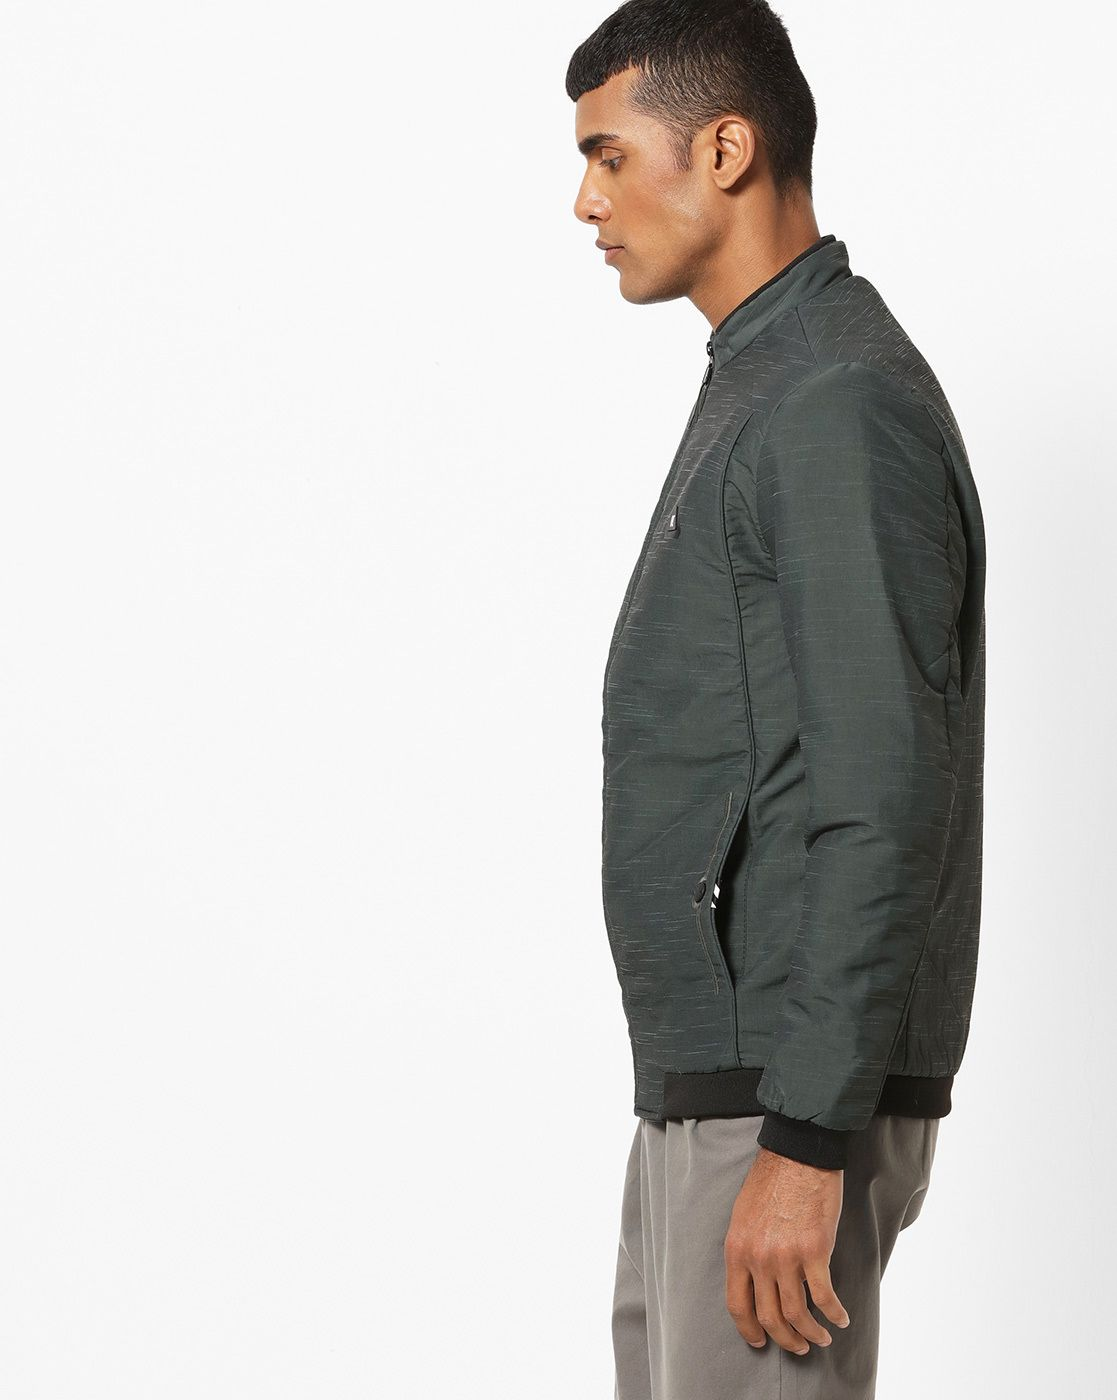 d9fe4ccd9 Buy Olive Green Jackets & Coats for Men by Fort Collins Online ...